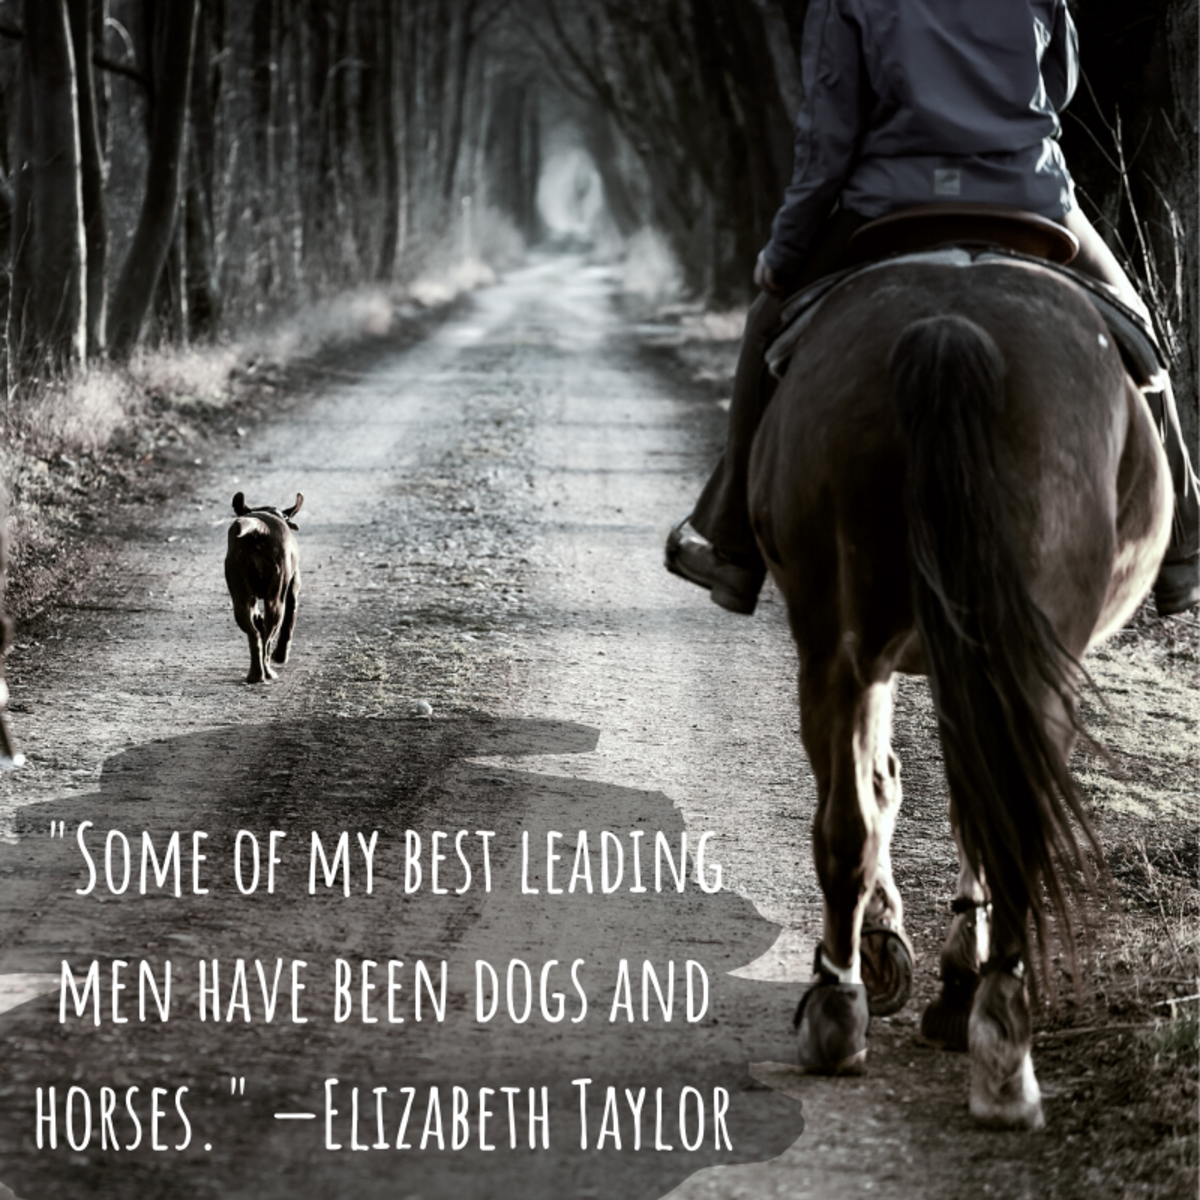 """Some of my best leading men have been dogs and horses."" —Elizabeth Taylor"